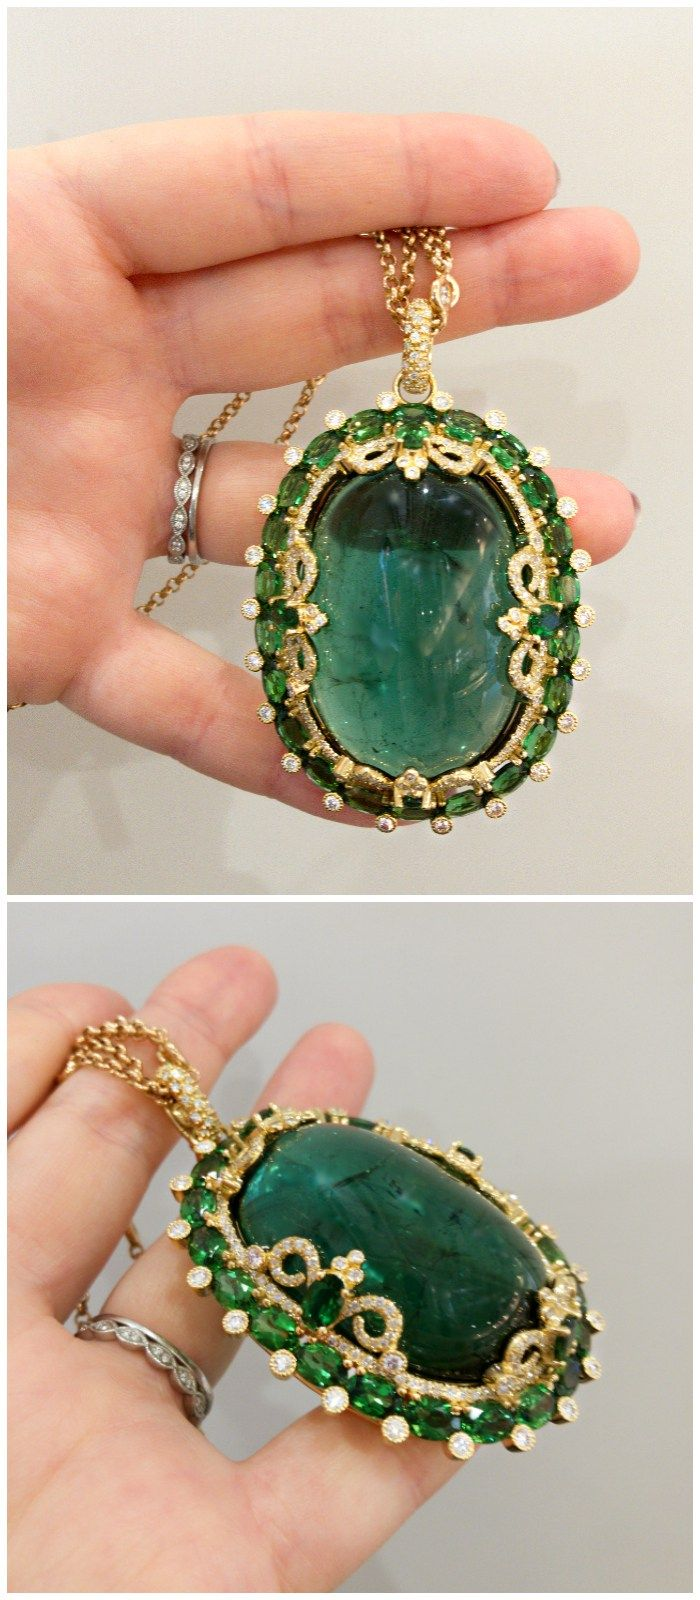 A stunning tourmaline cabochon pendant necklace by Erica Courtney.